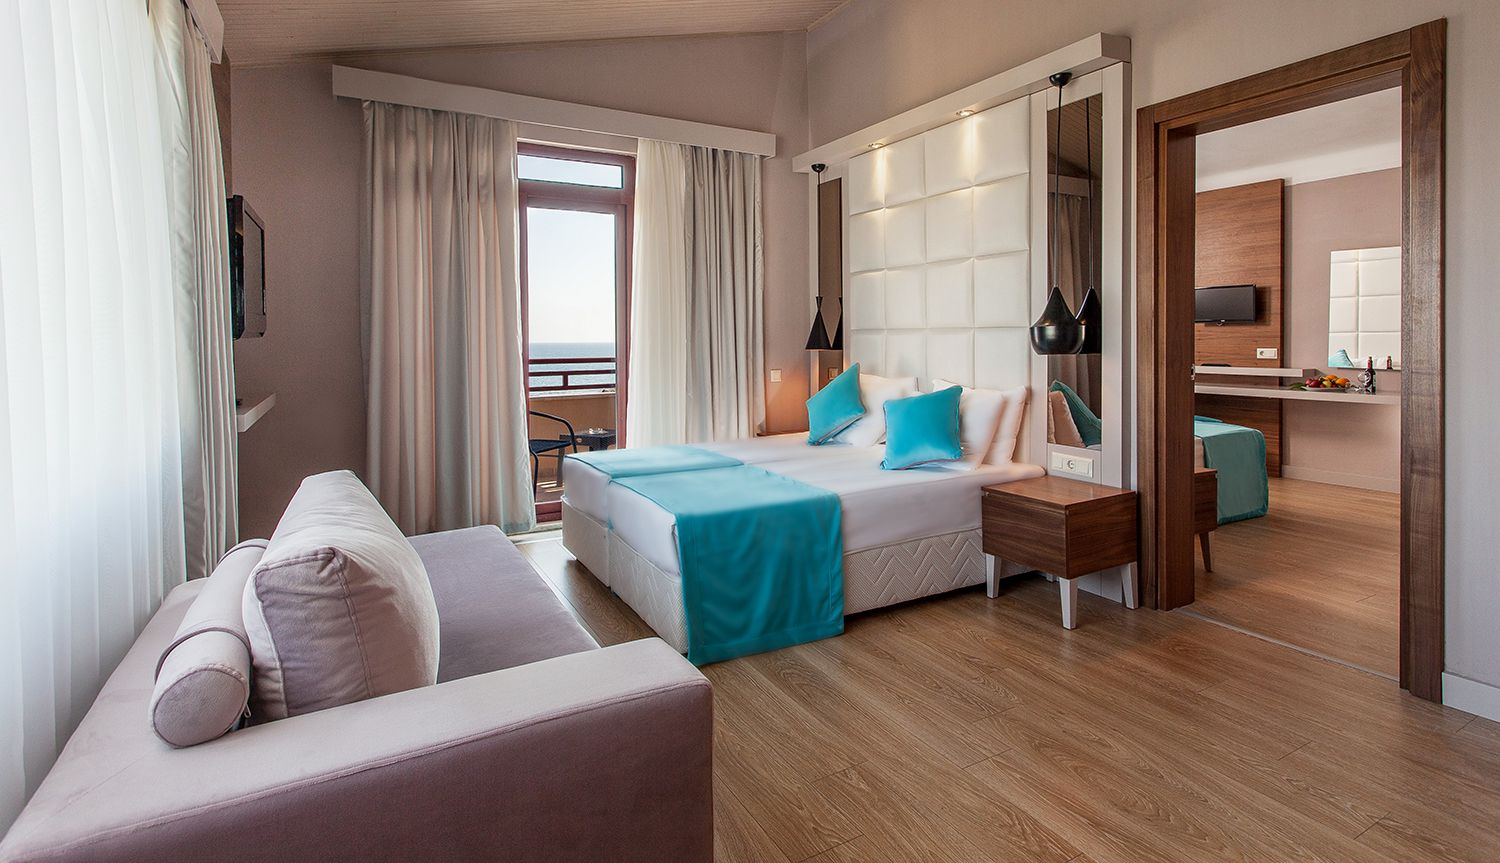 Rooms: Definition Of Adjoining Hotel Rooms